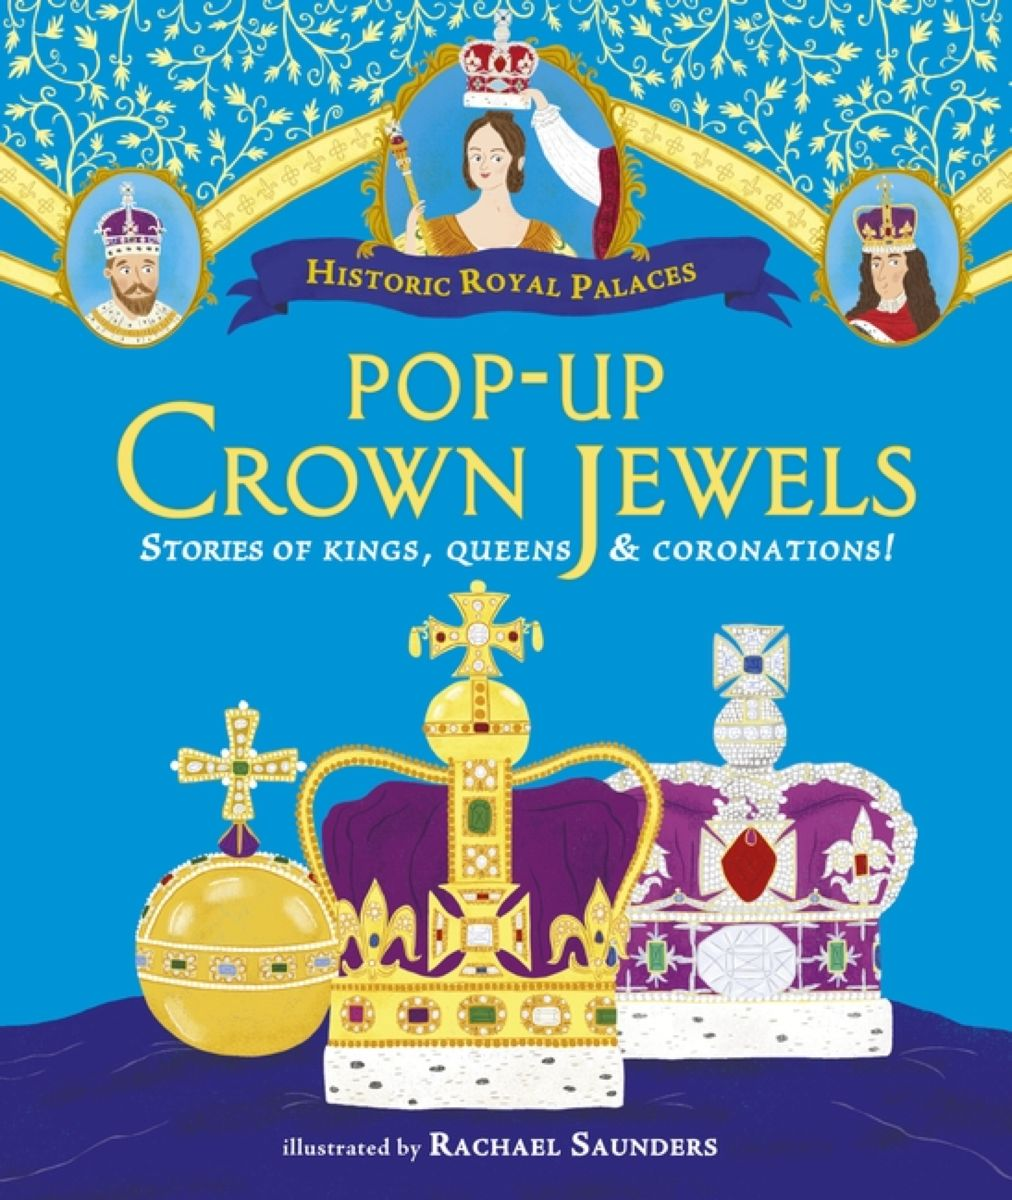 Pop-up Crown Jewels the silver crown